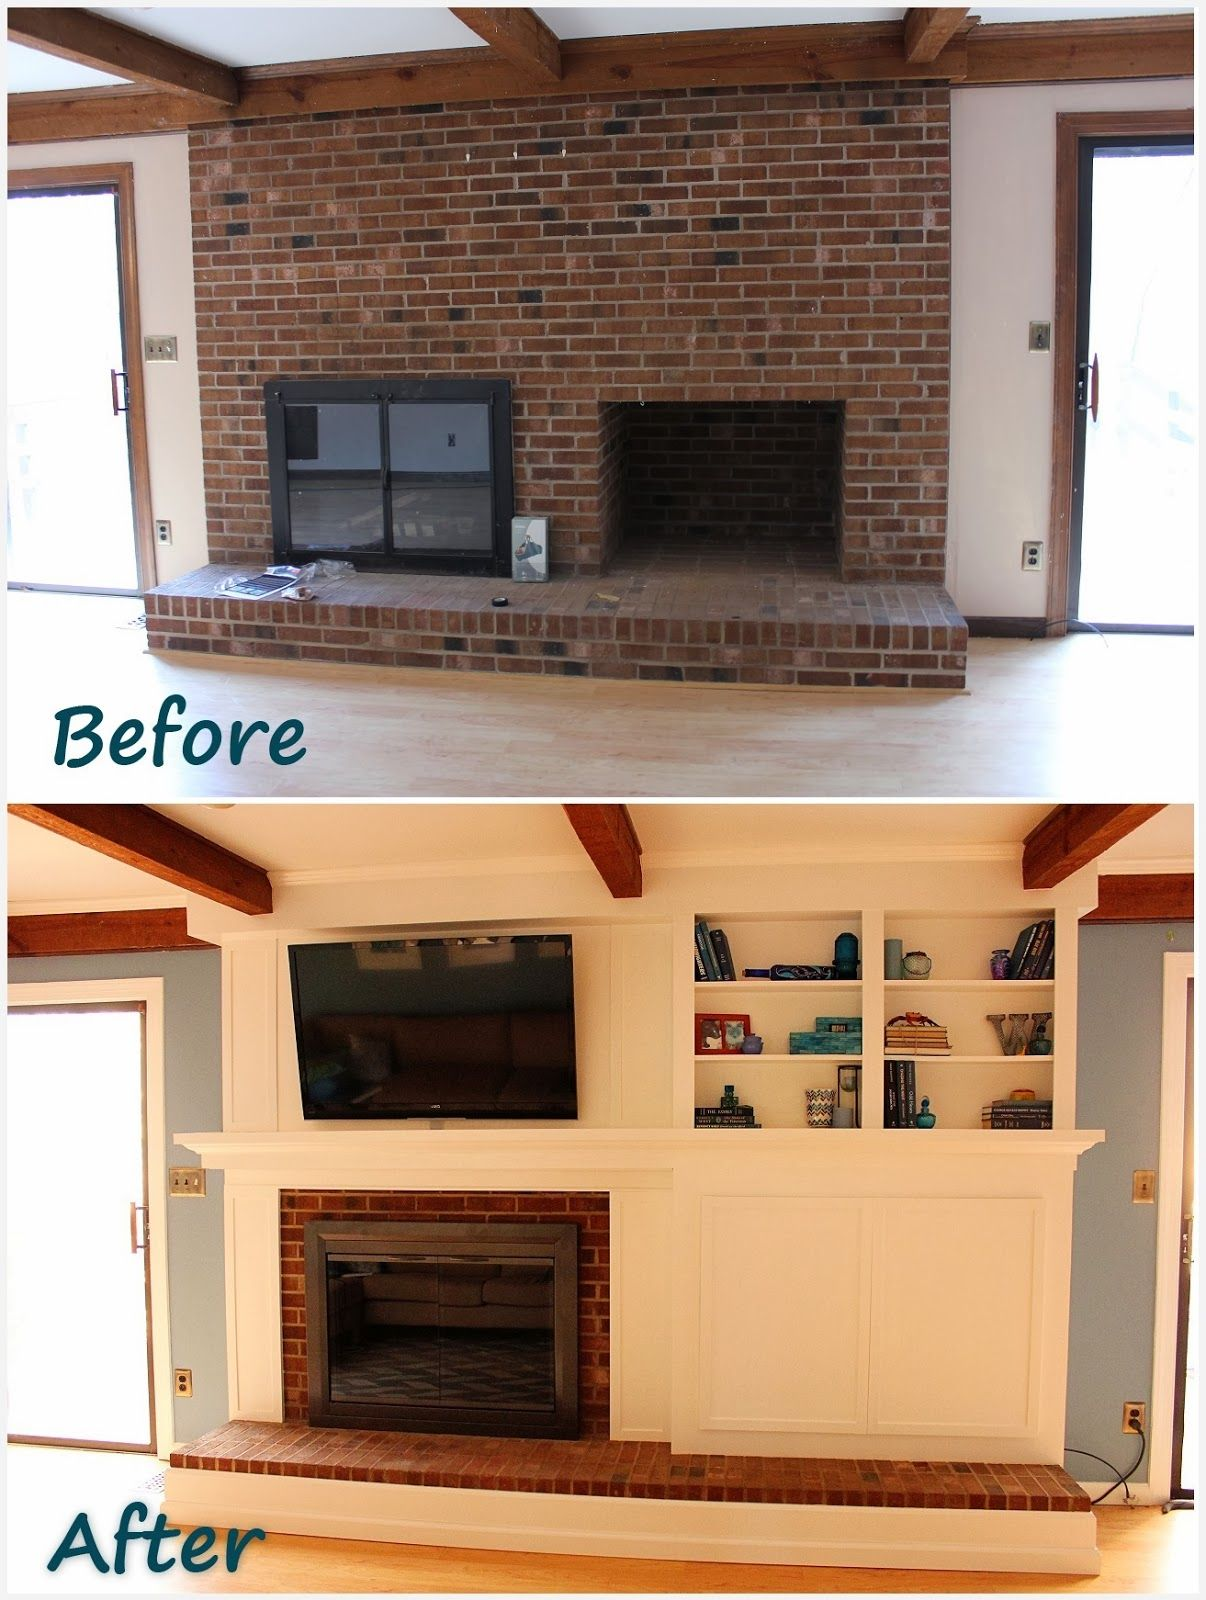 Cover brick fireplace with stone - Fireplace Remodel Diy A Fireplace Facade To Cover An Old Brick Fireplace Without Painting